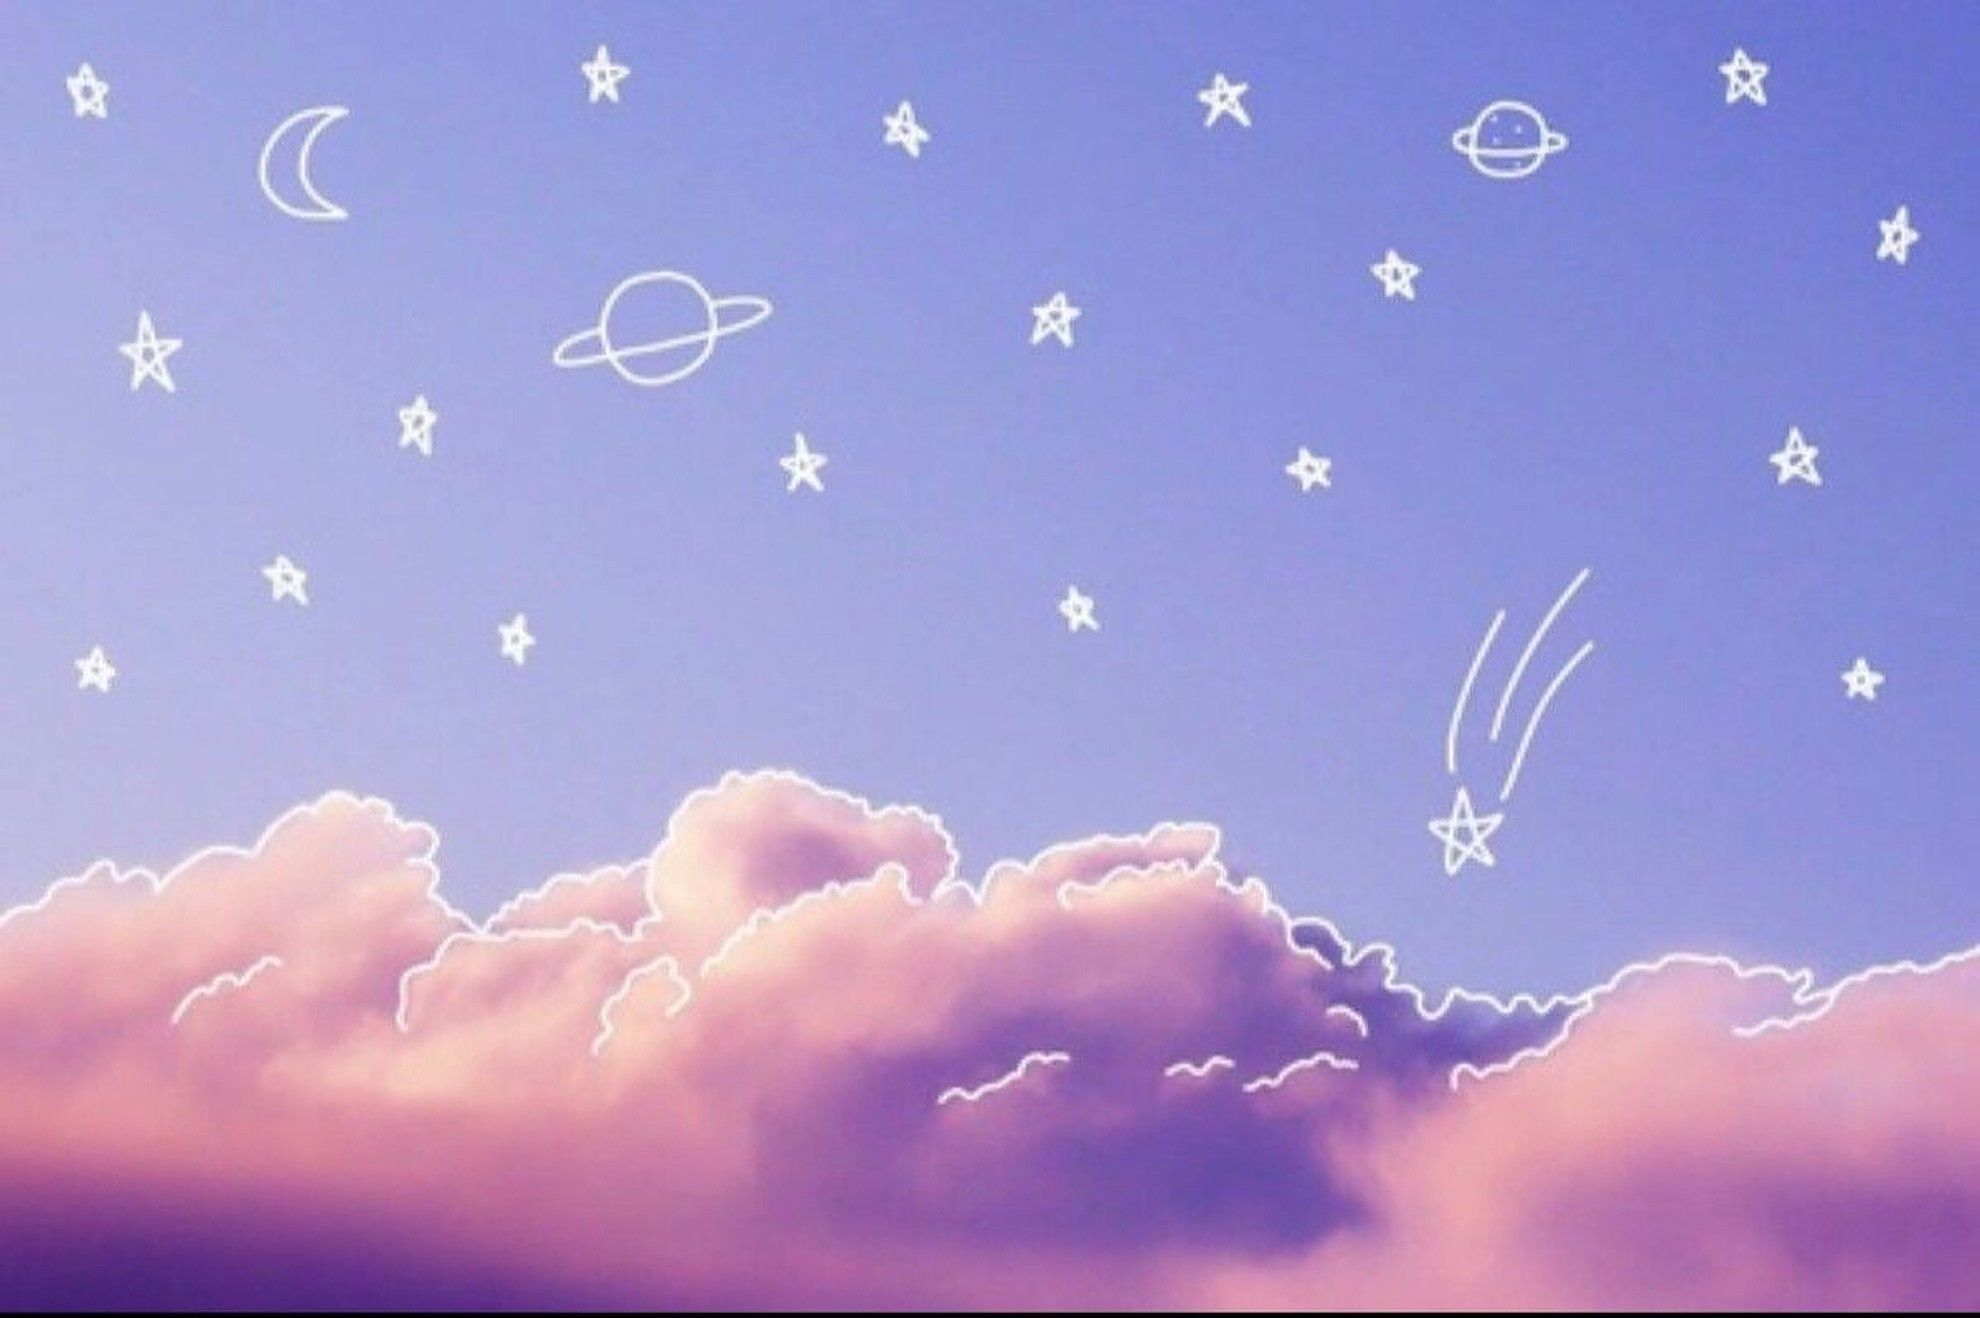 Roblox Theme Doodled Clouds In 2020 Cute Wallpapers For Computer Aesthetic Desktop Wallpaper Hipster Wallpaper